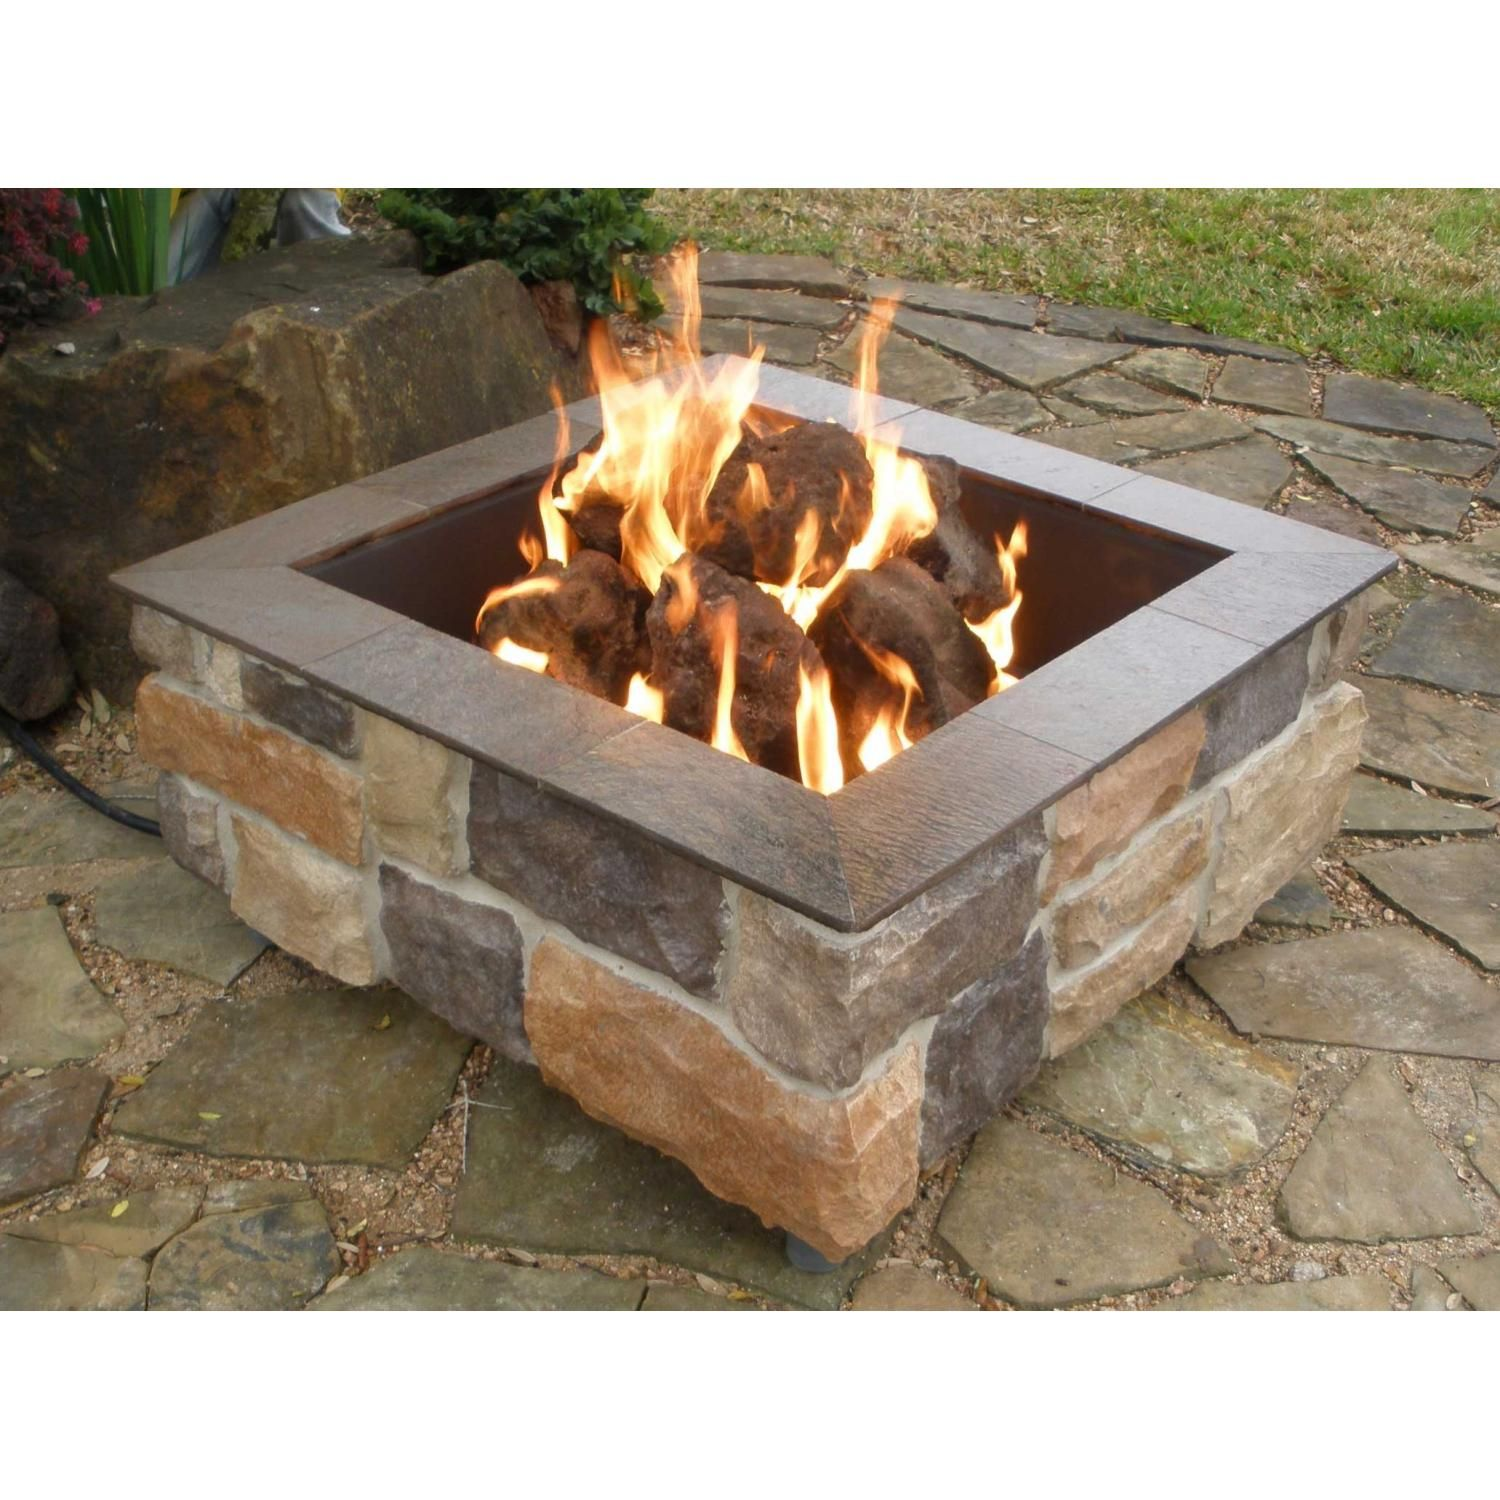 Pin By Jade Morrow On Gardens Natural Gas Fire Pit Outside Fire Pits Square Fire Pit